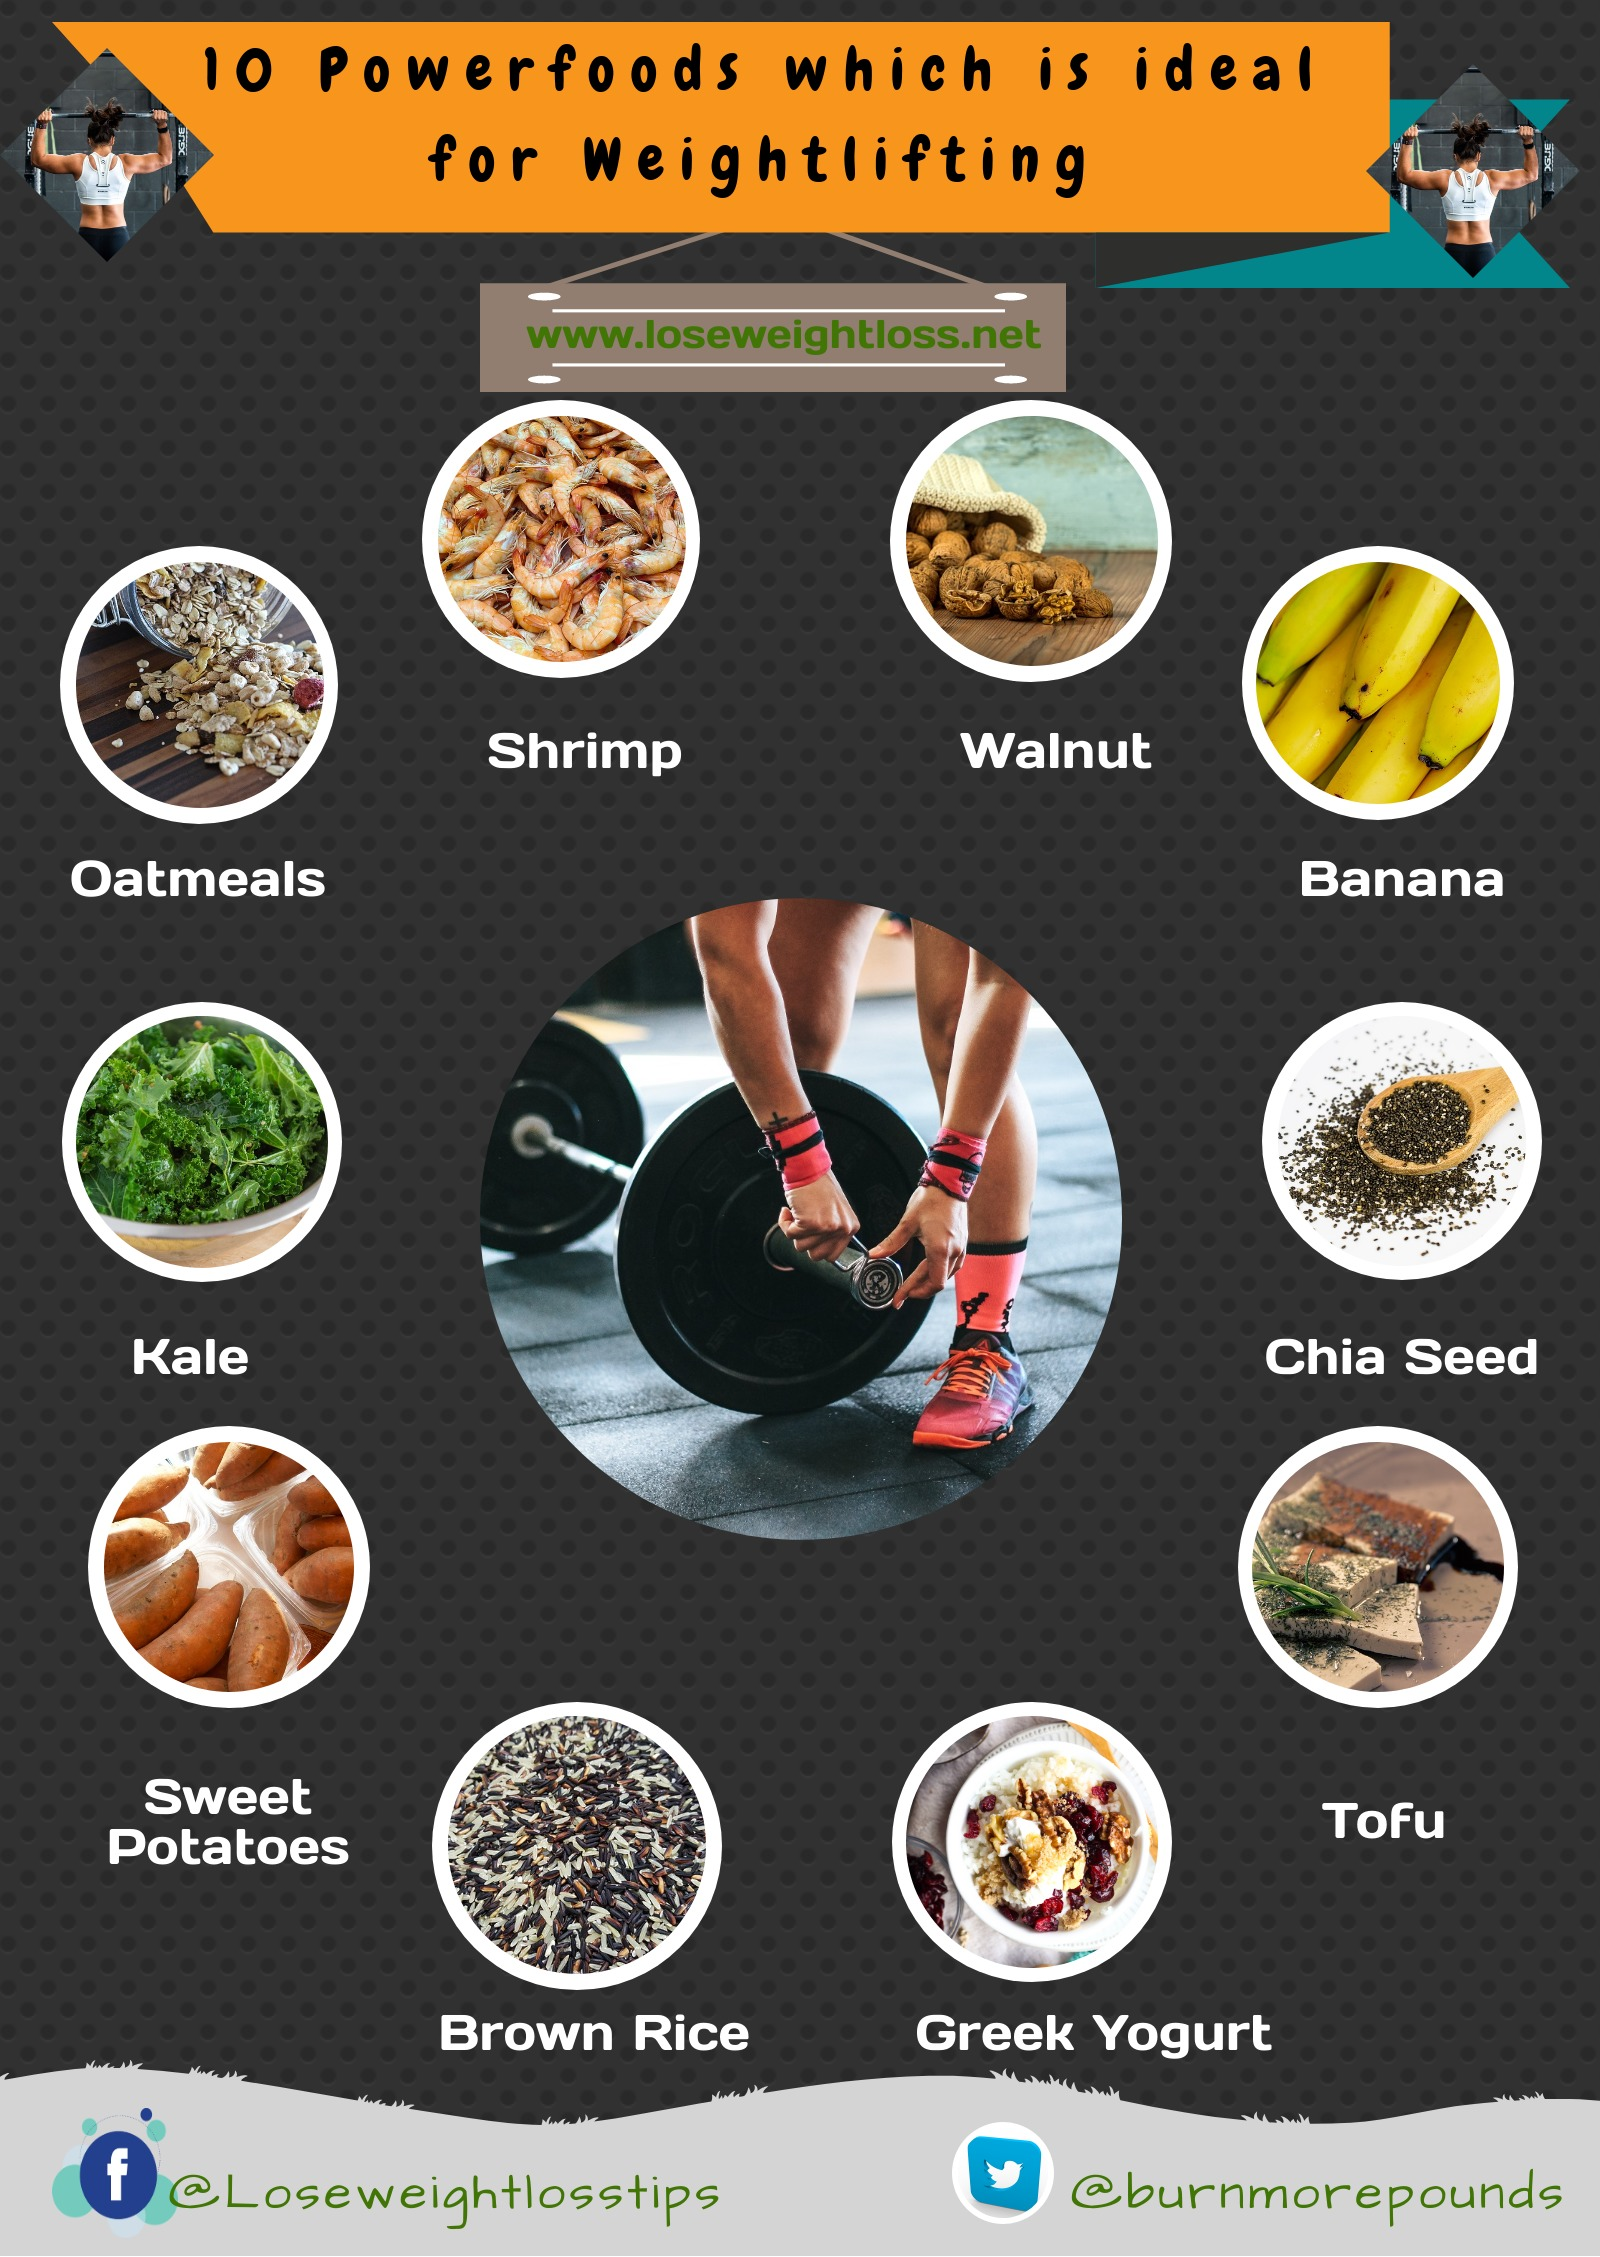 Powerfoods which is ideal for Weightlifting